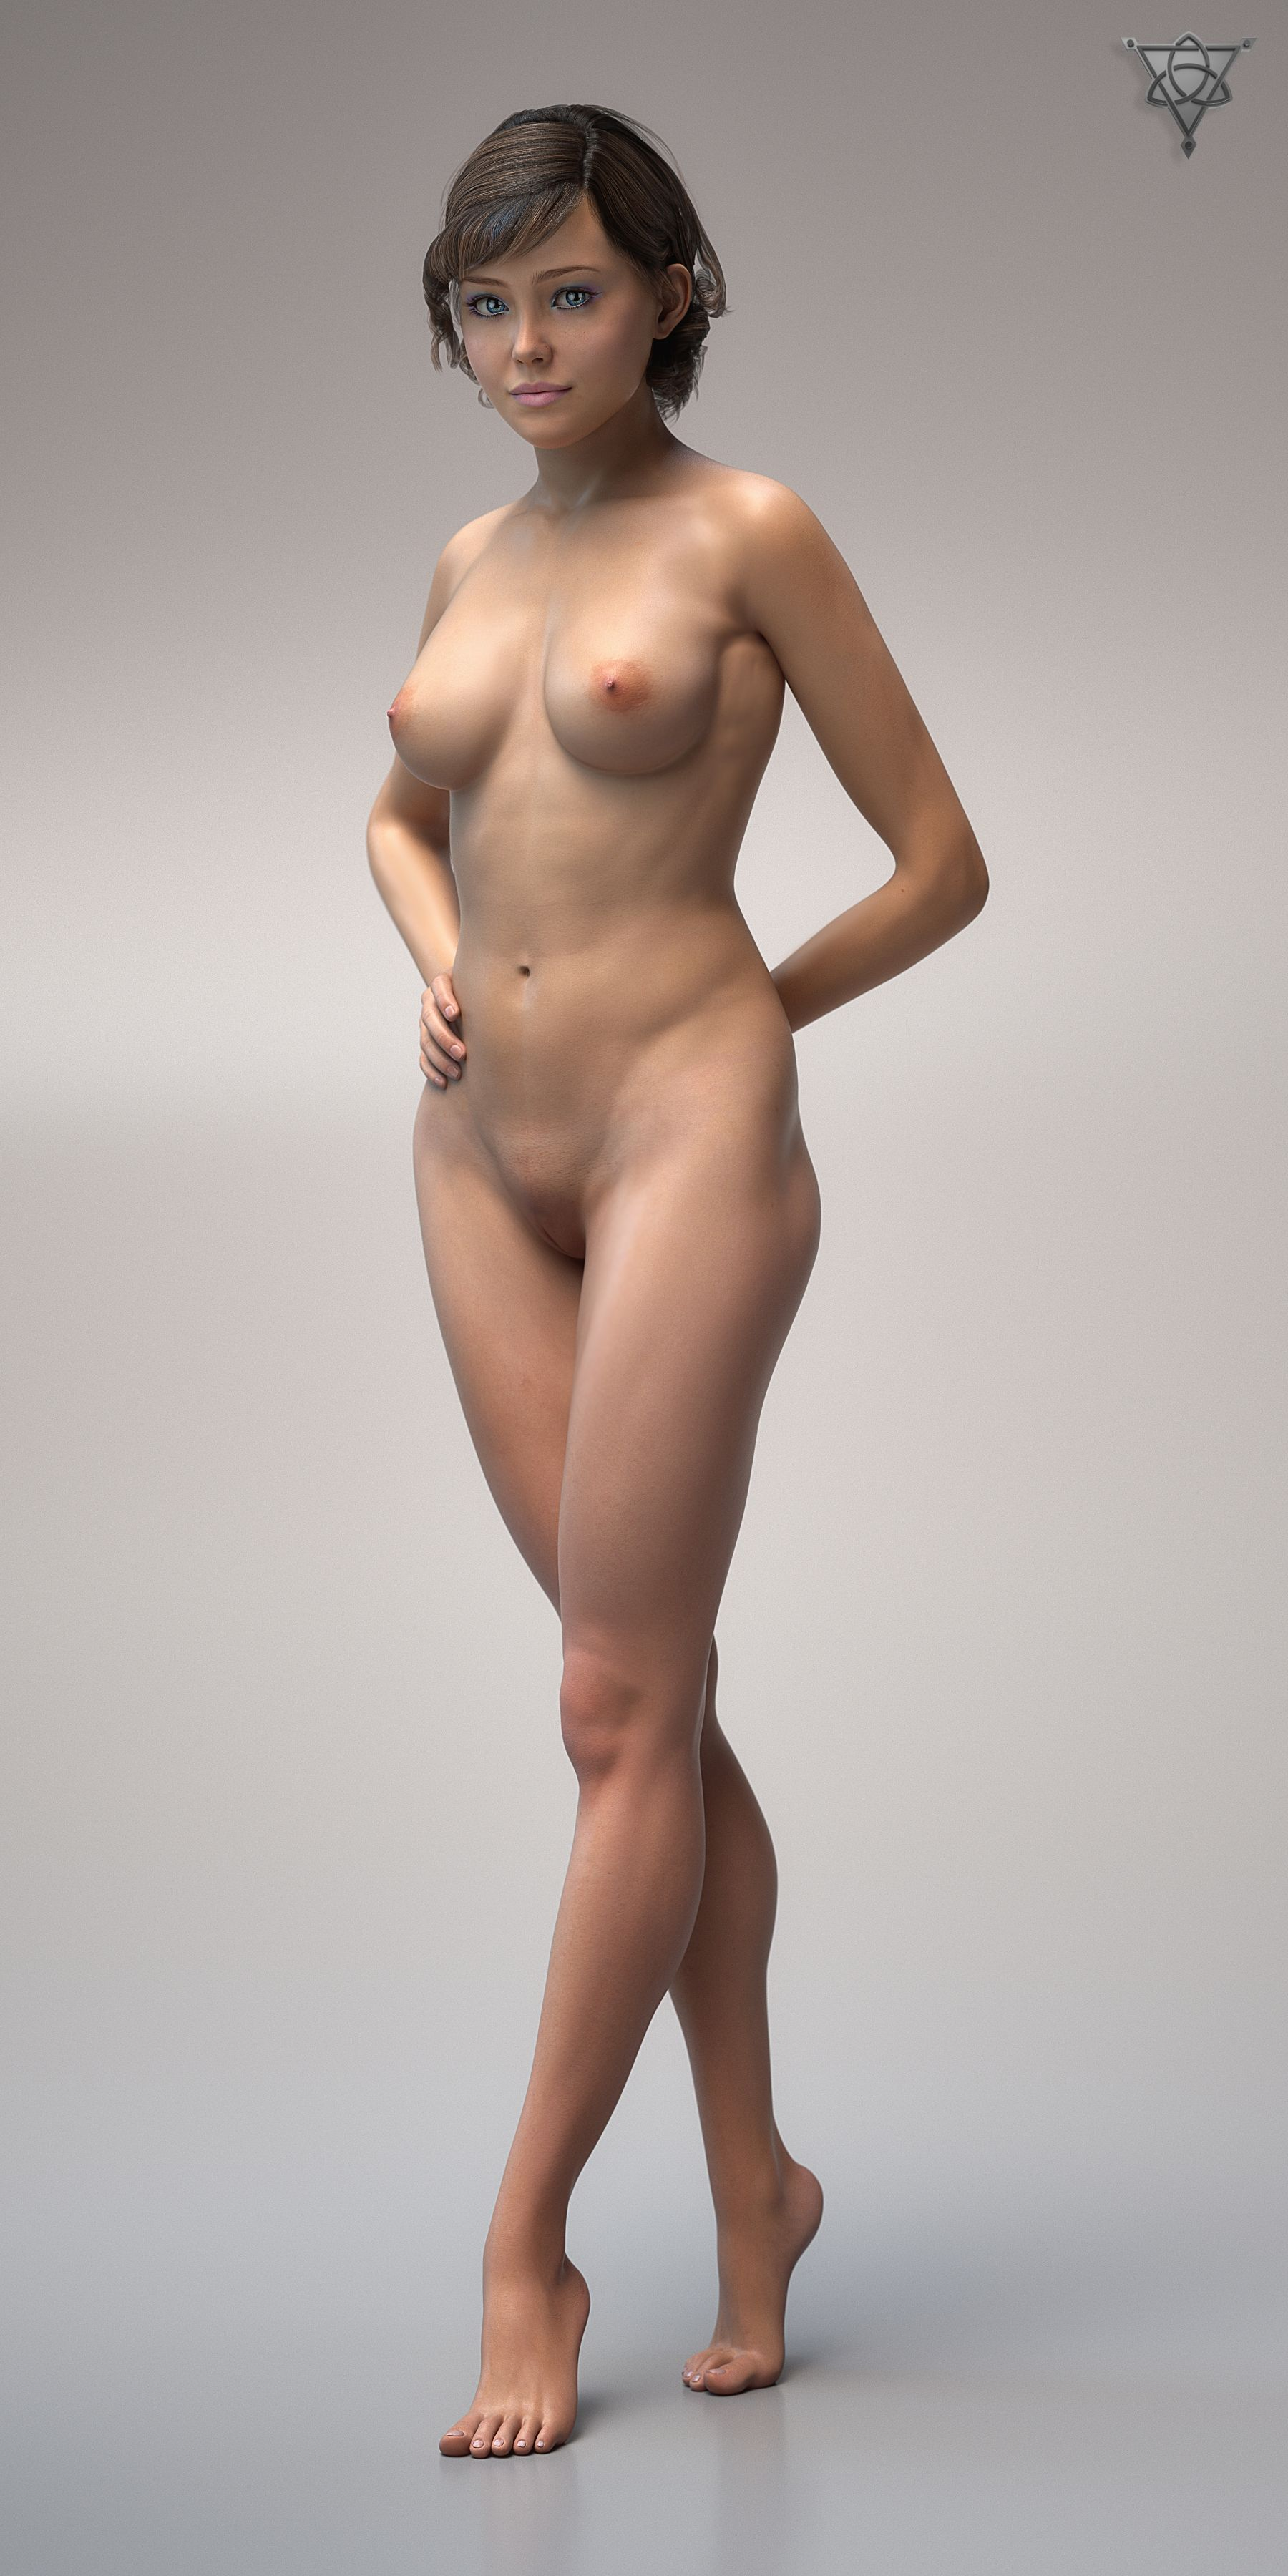 Nude woman from daz hentai angel